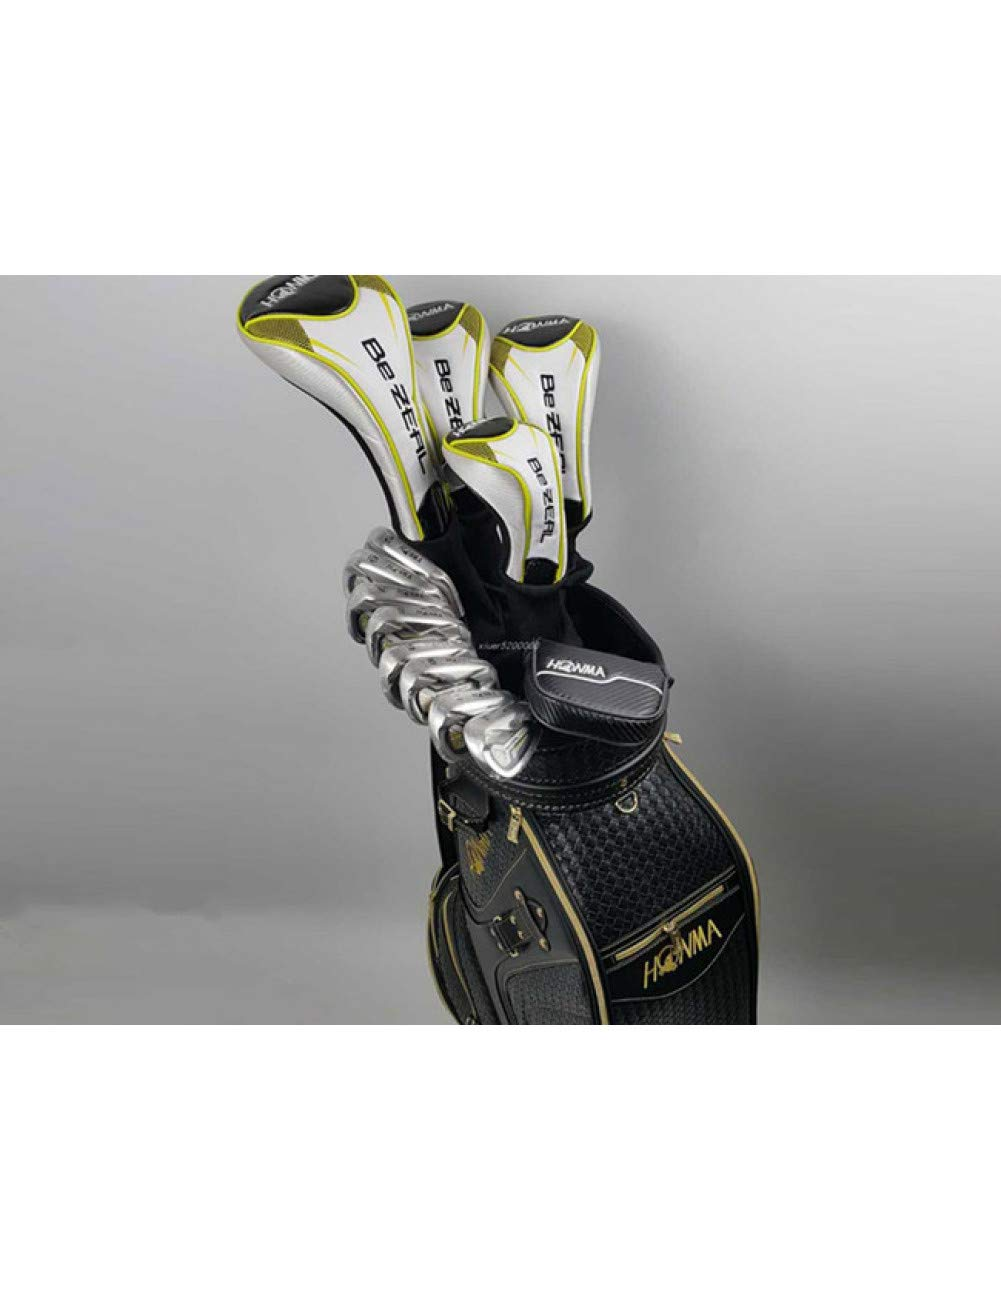 HDPP Club De Golf 525 Set Completo De Palos De Golf Driver + ...